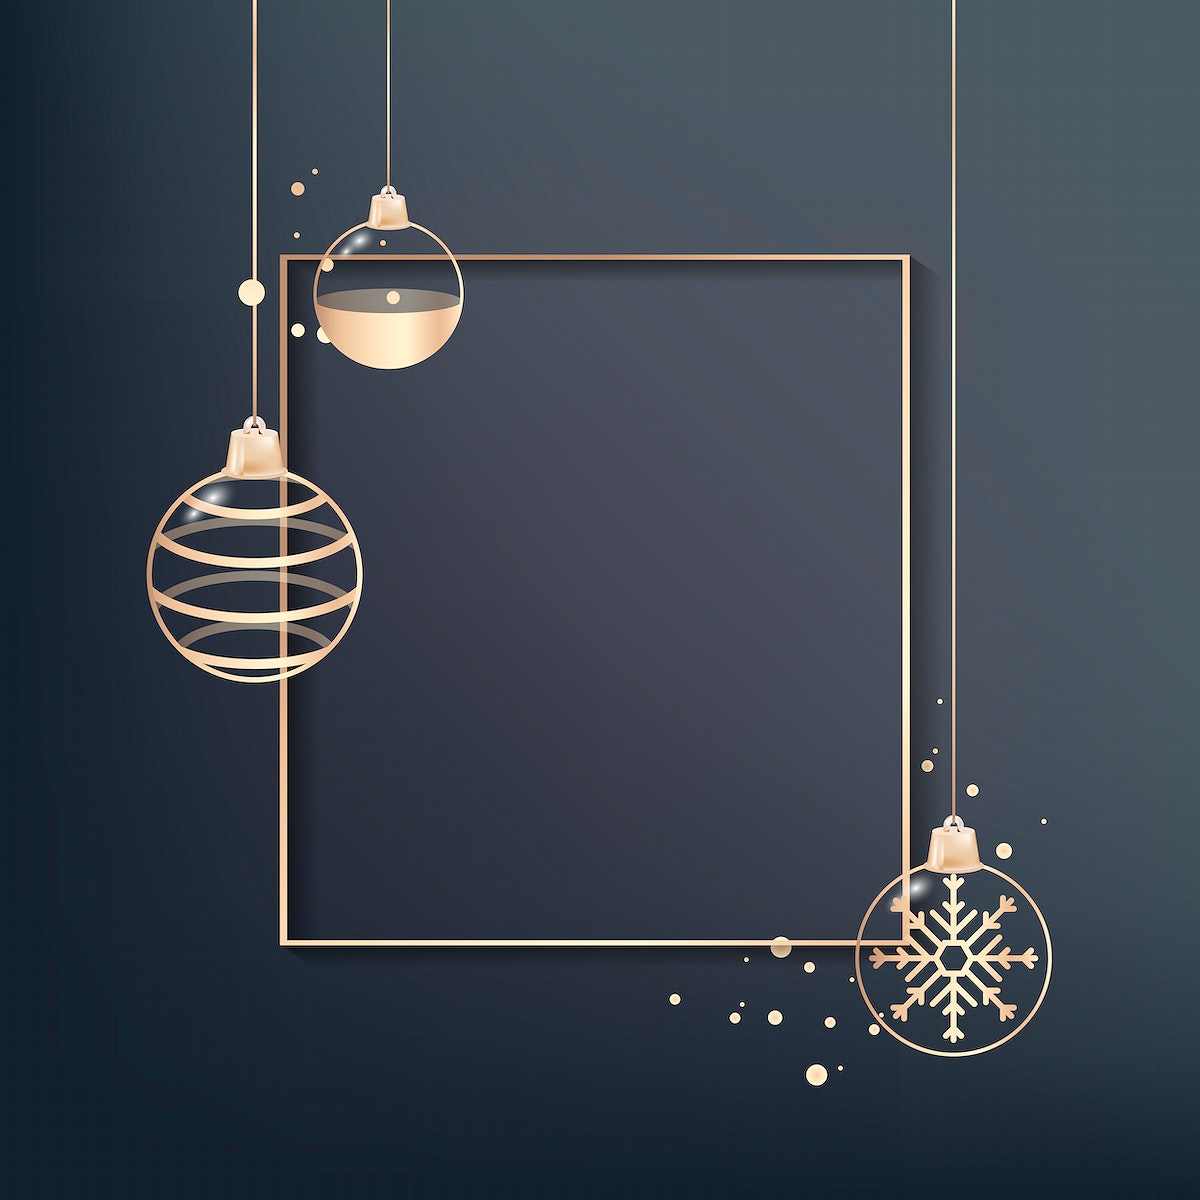 Gold frame with bauble patterned vector